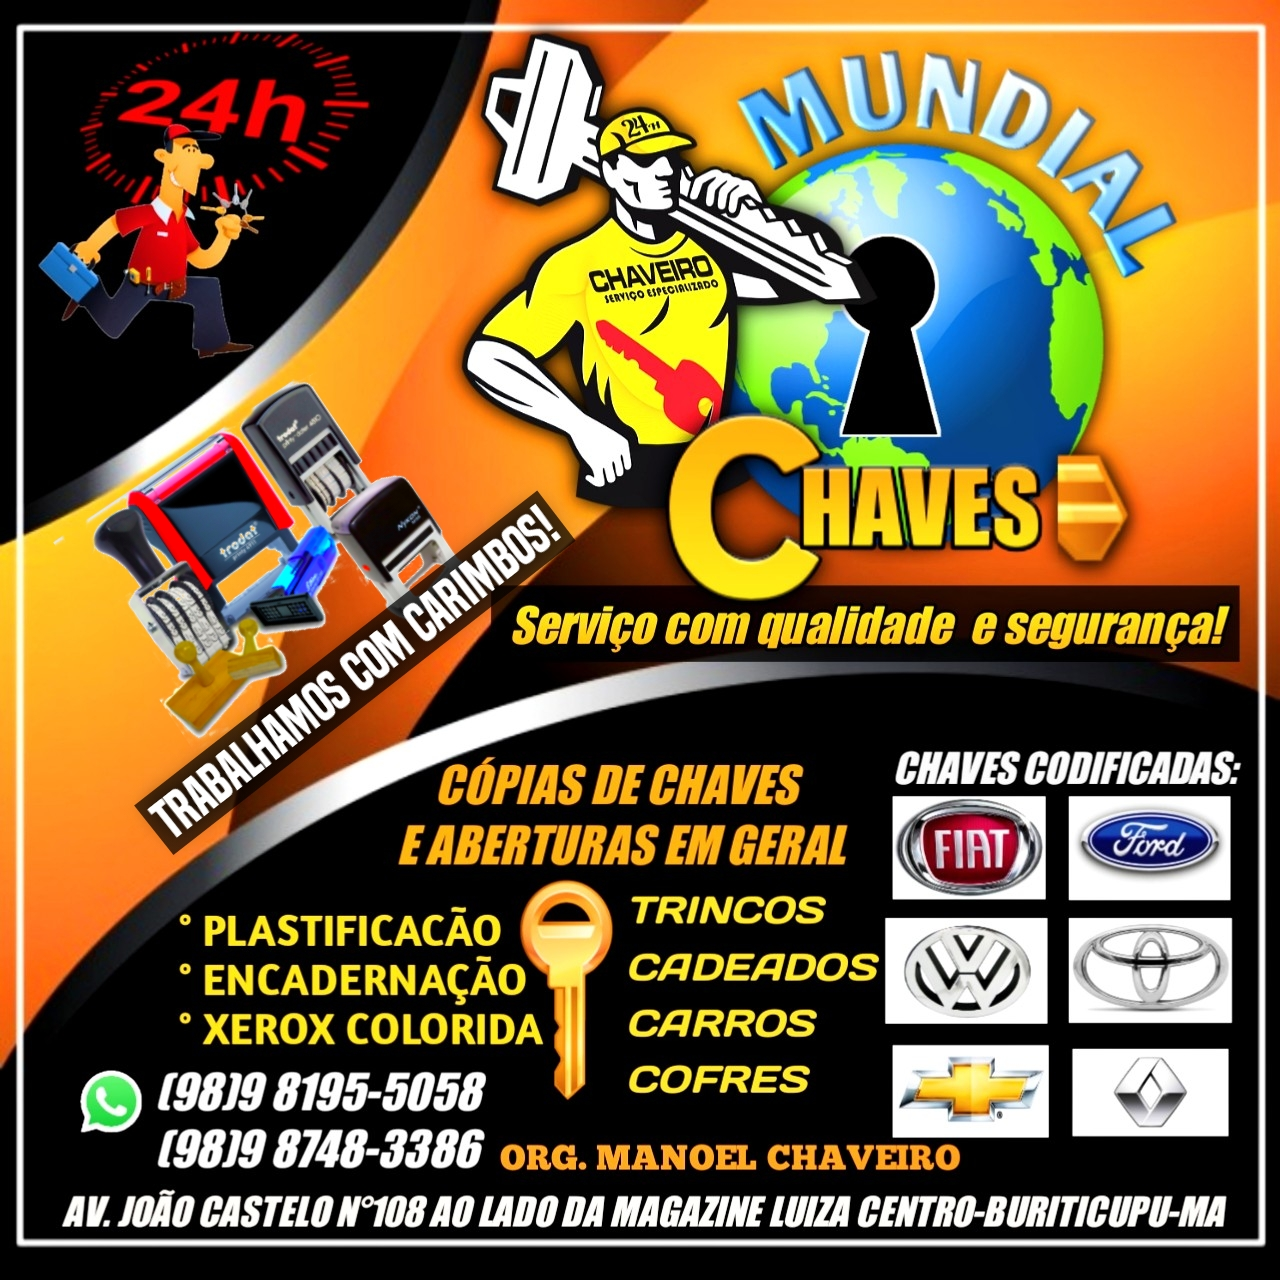 MUNDIAL CHAVES